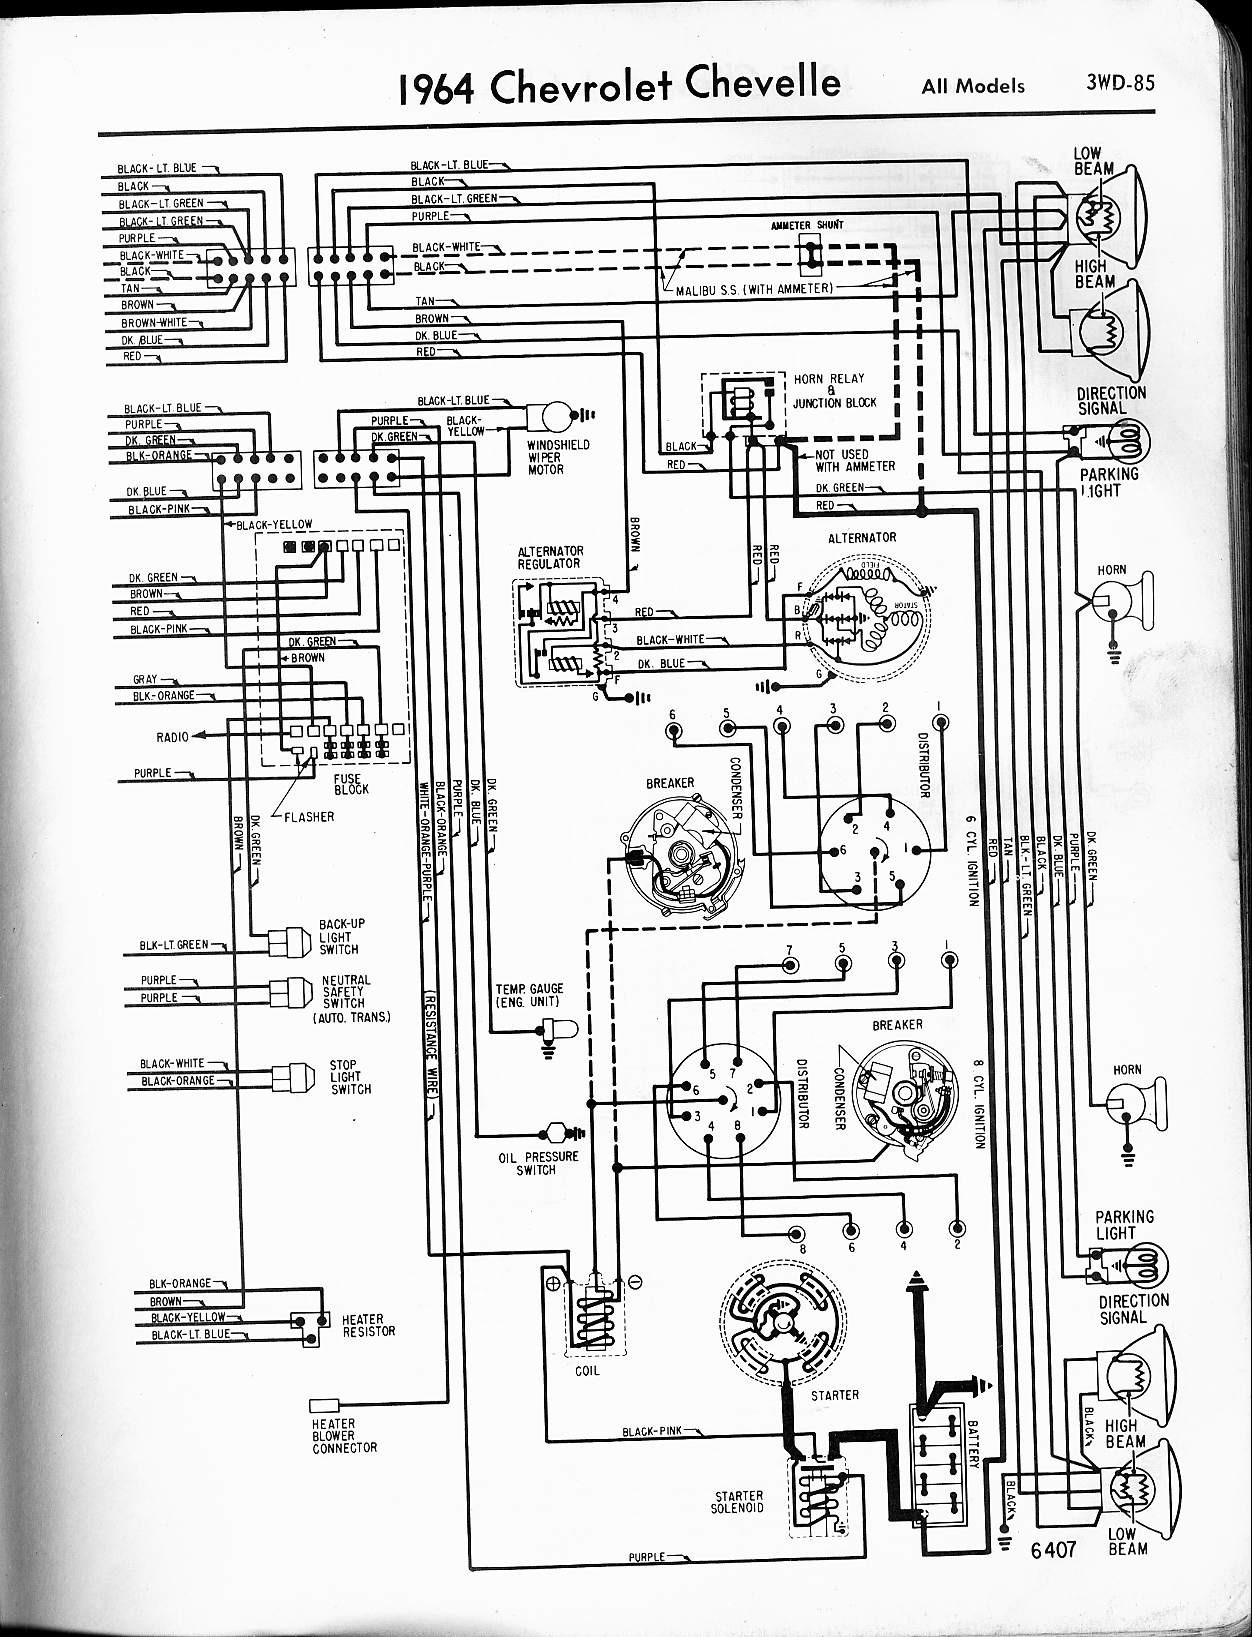 Rheem Rhllhm3617ja Wiring Diagram Download Collection 1969 Chevelle Chevy S Arresting